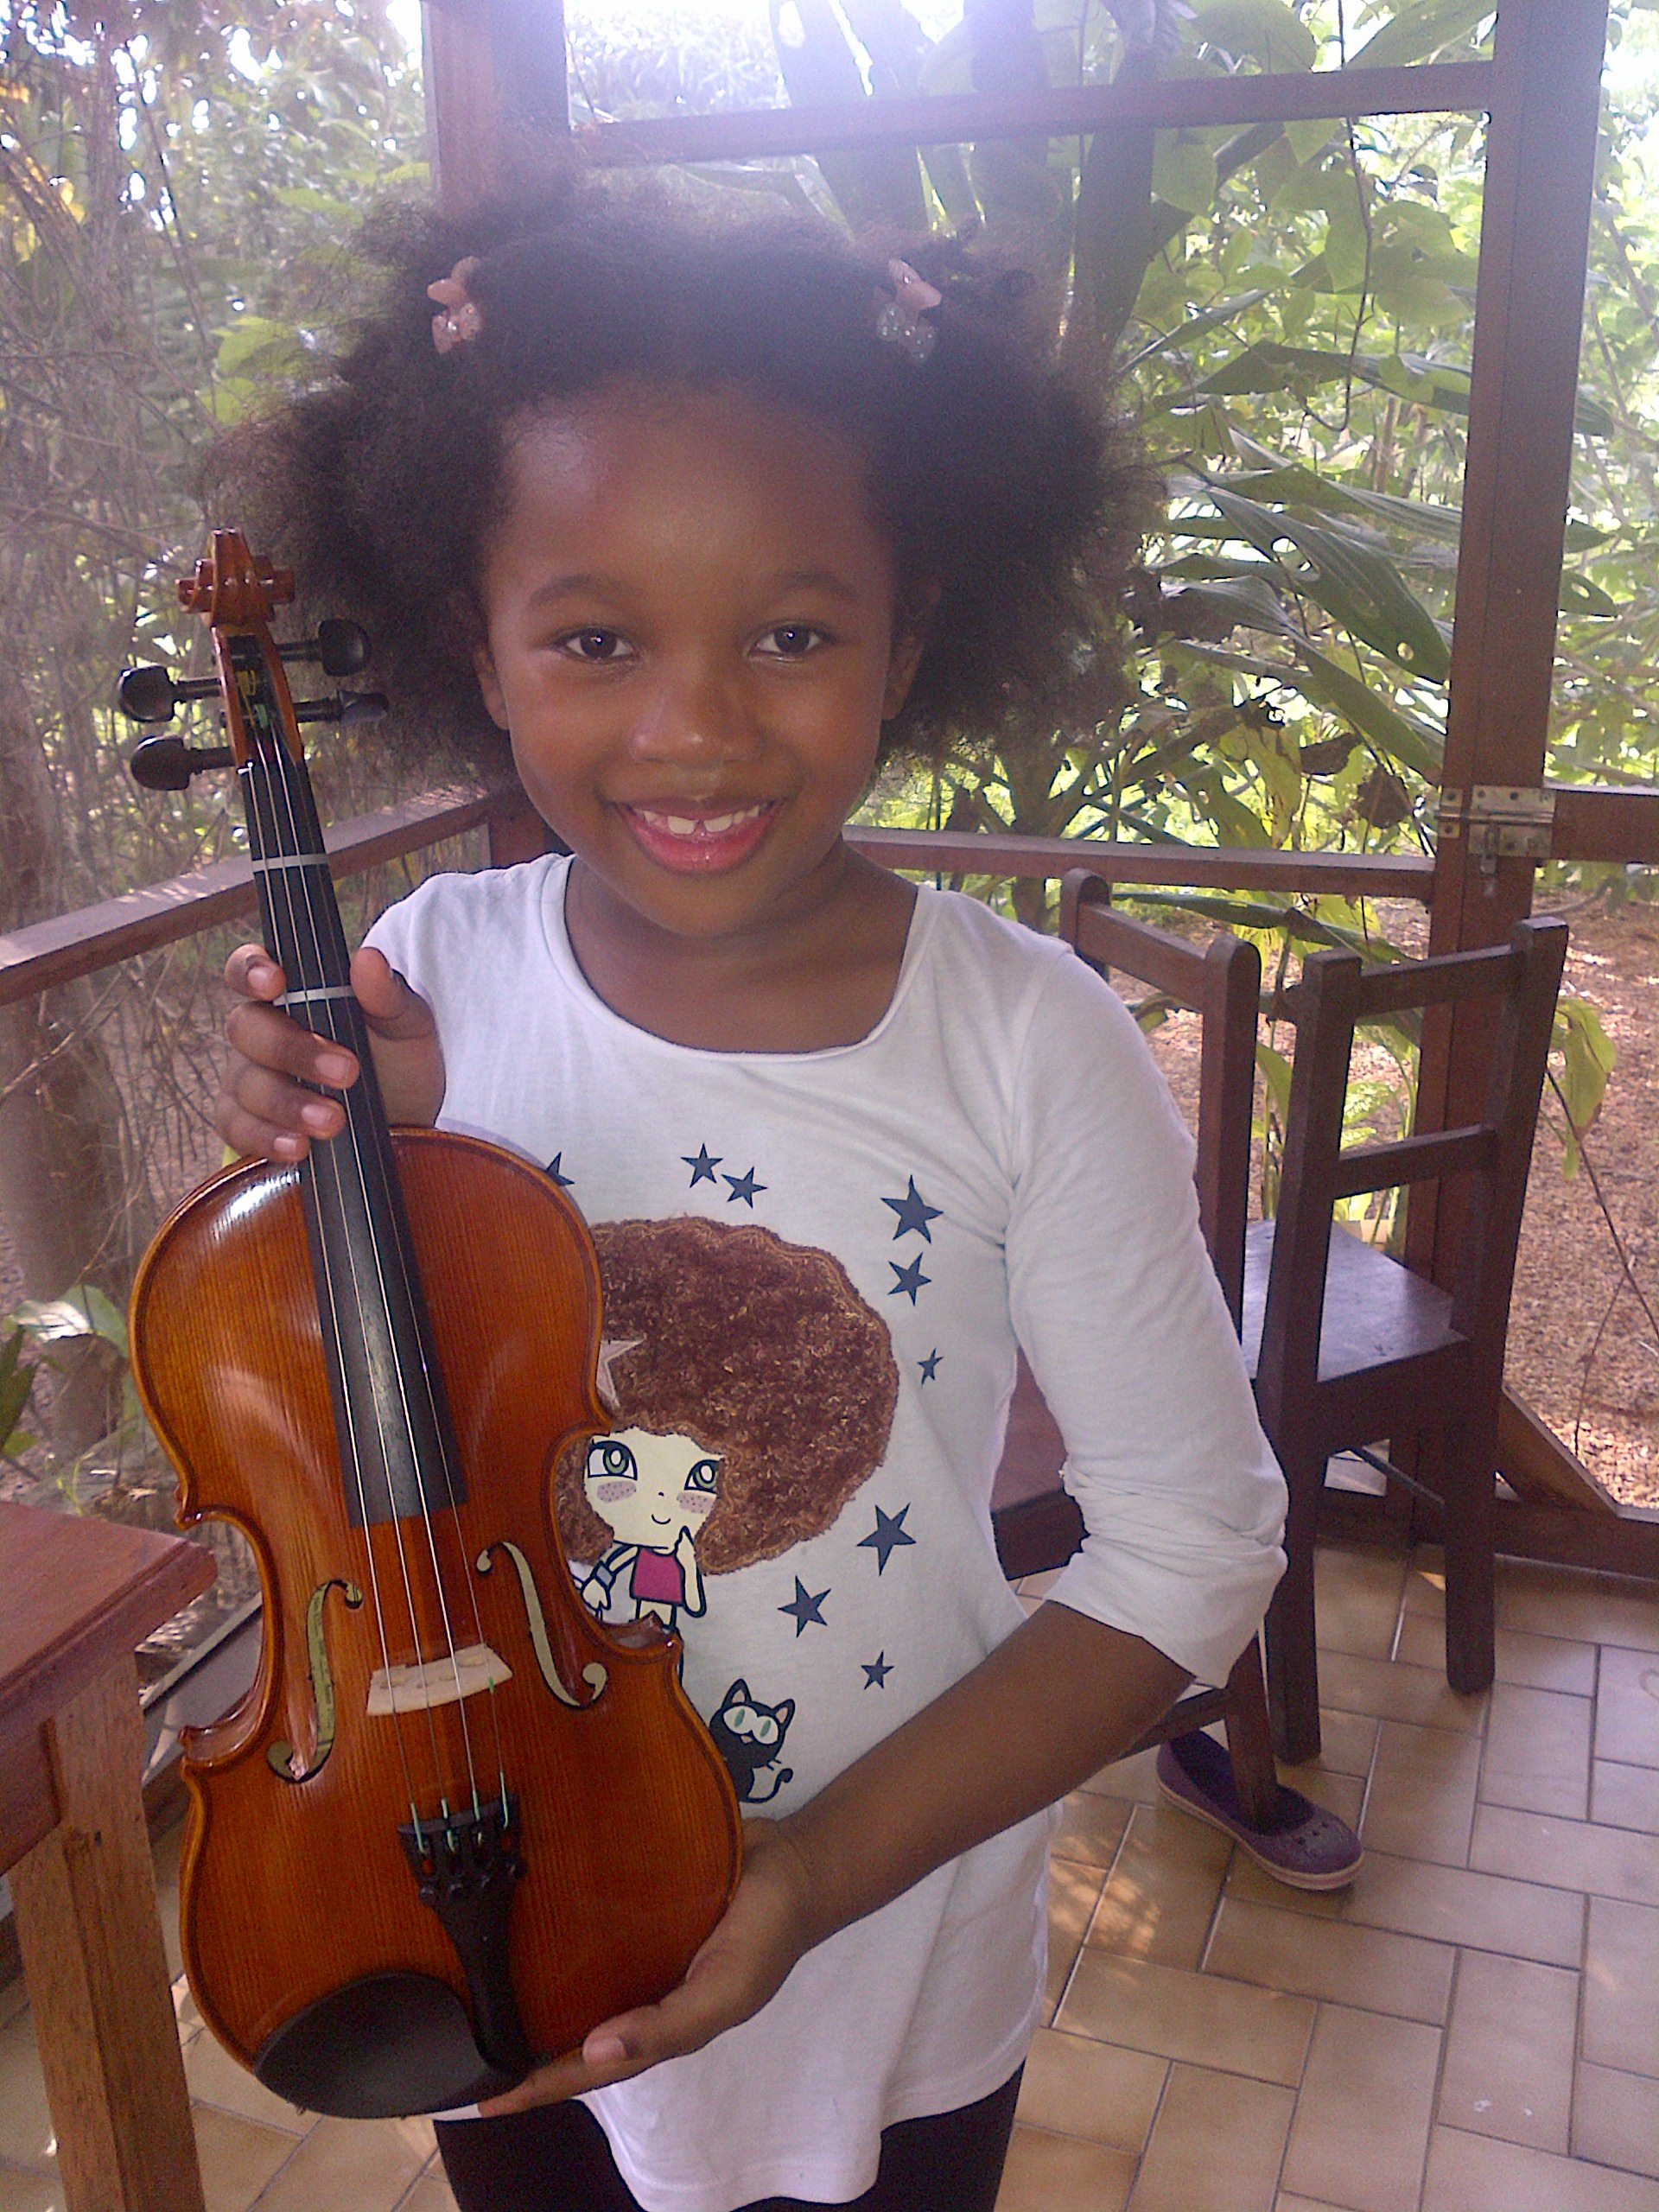 The day Cherissa received her violin and found out that Kate would teach her